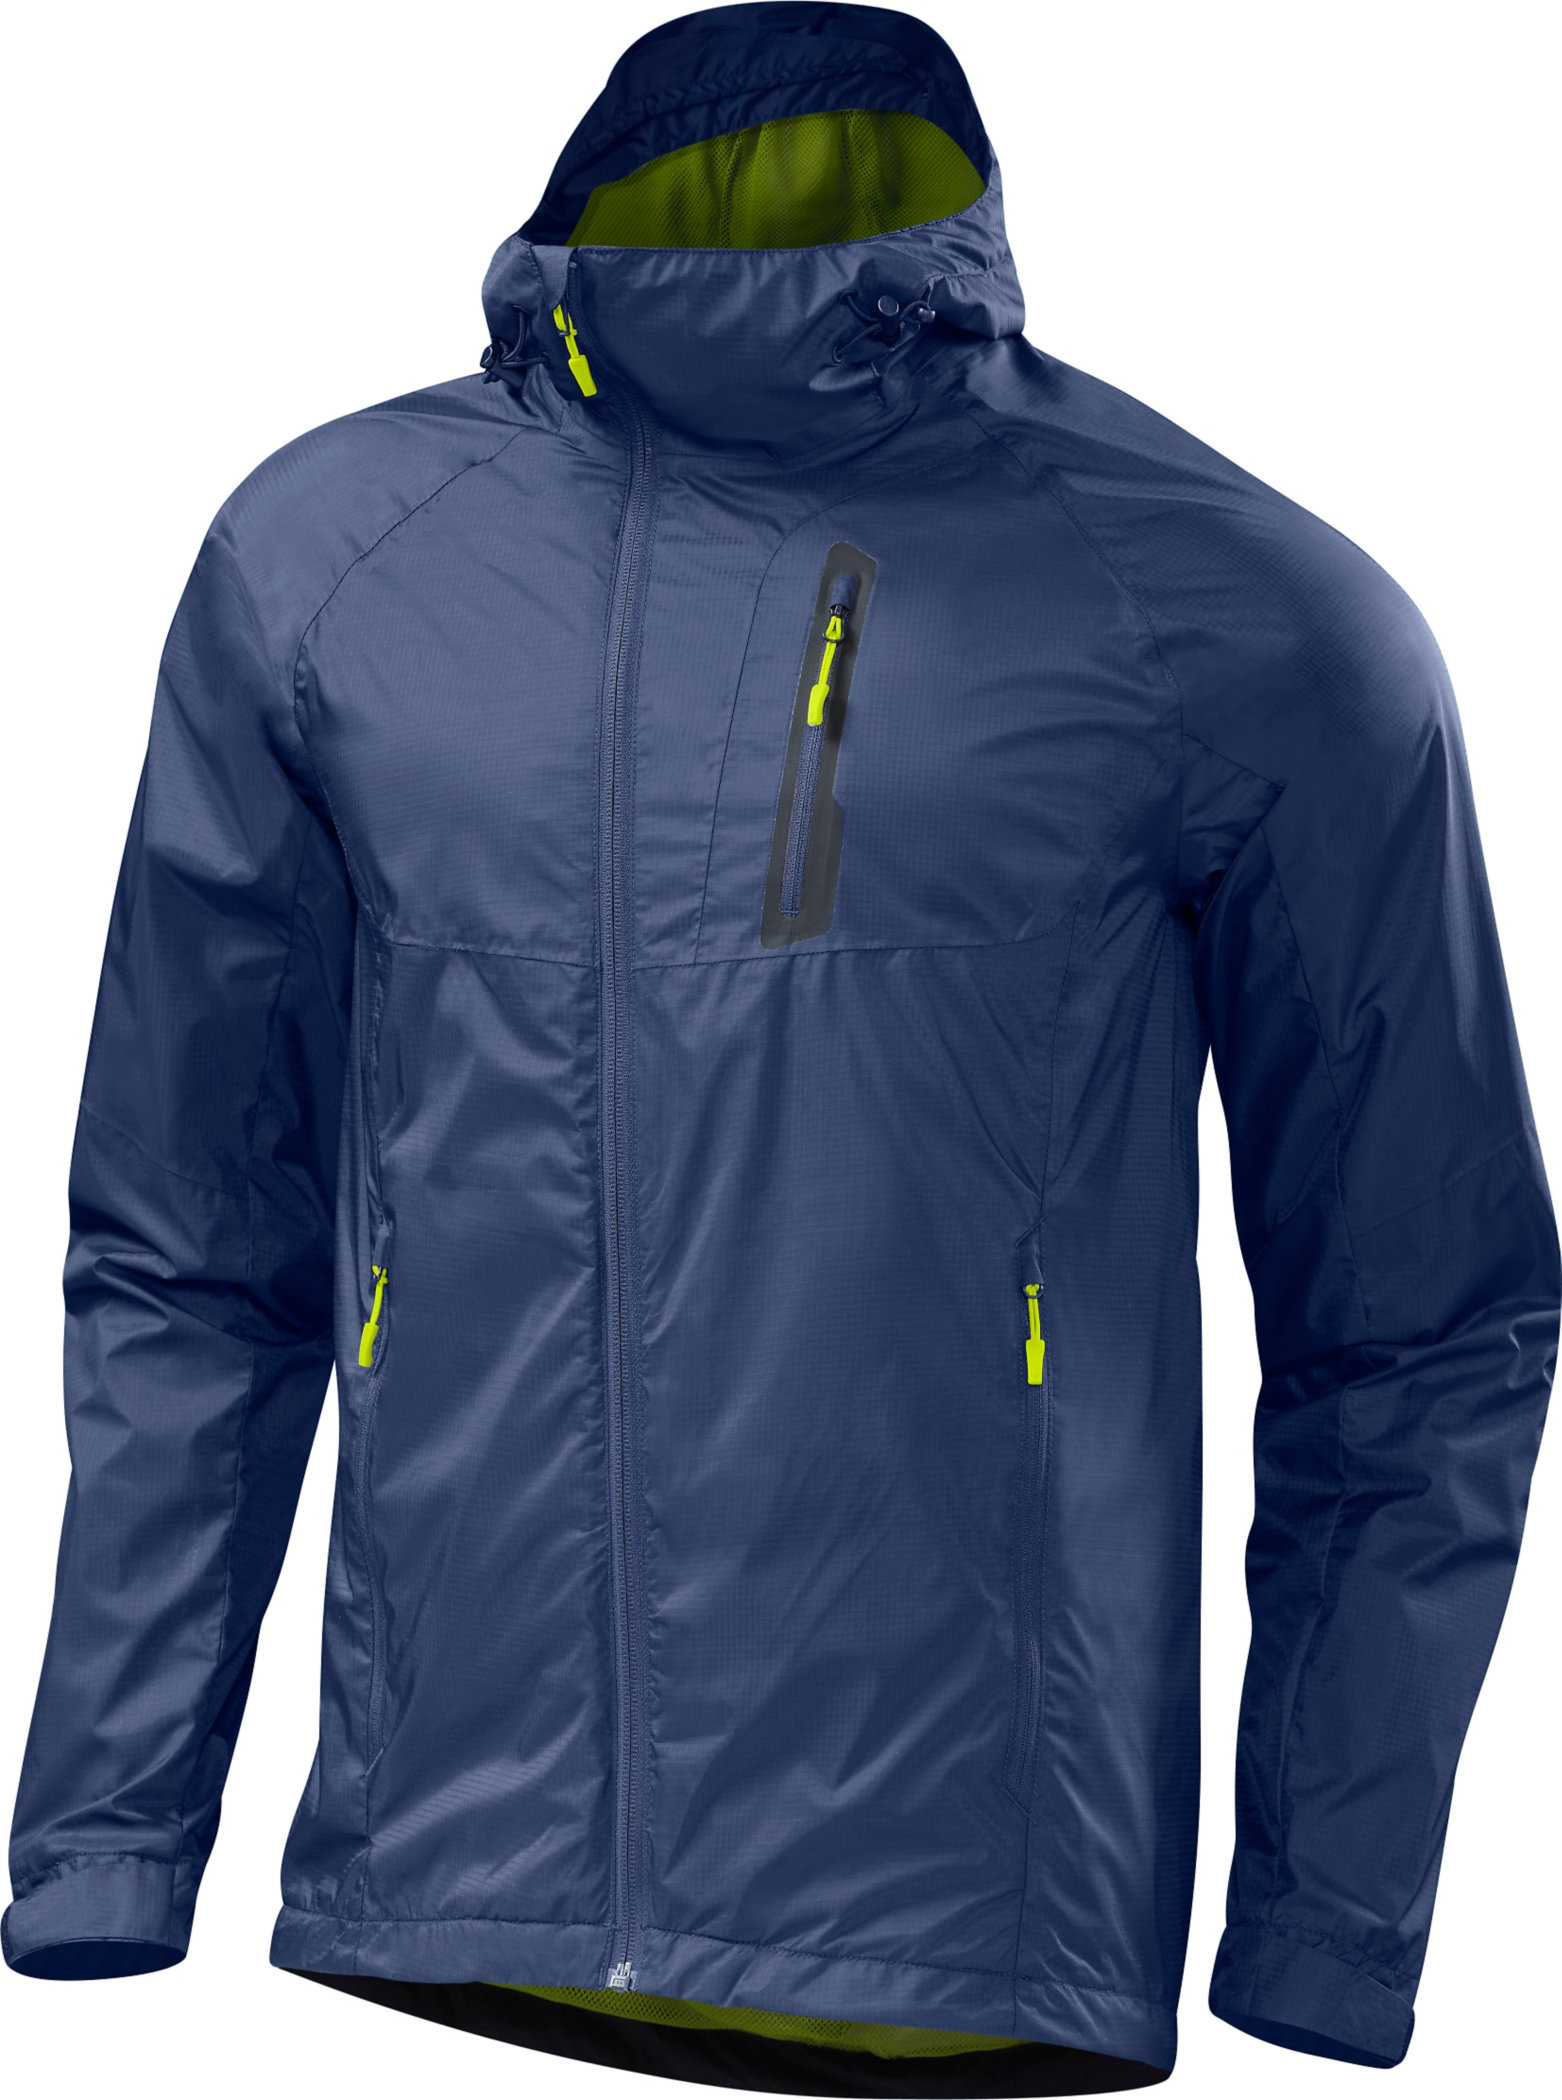 SPECIALIZED DEFLECT H2O EXPERT MTN AS JACKET NVY/HYP GRN M - Alpha Bikes